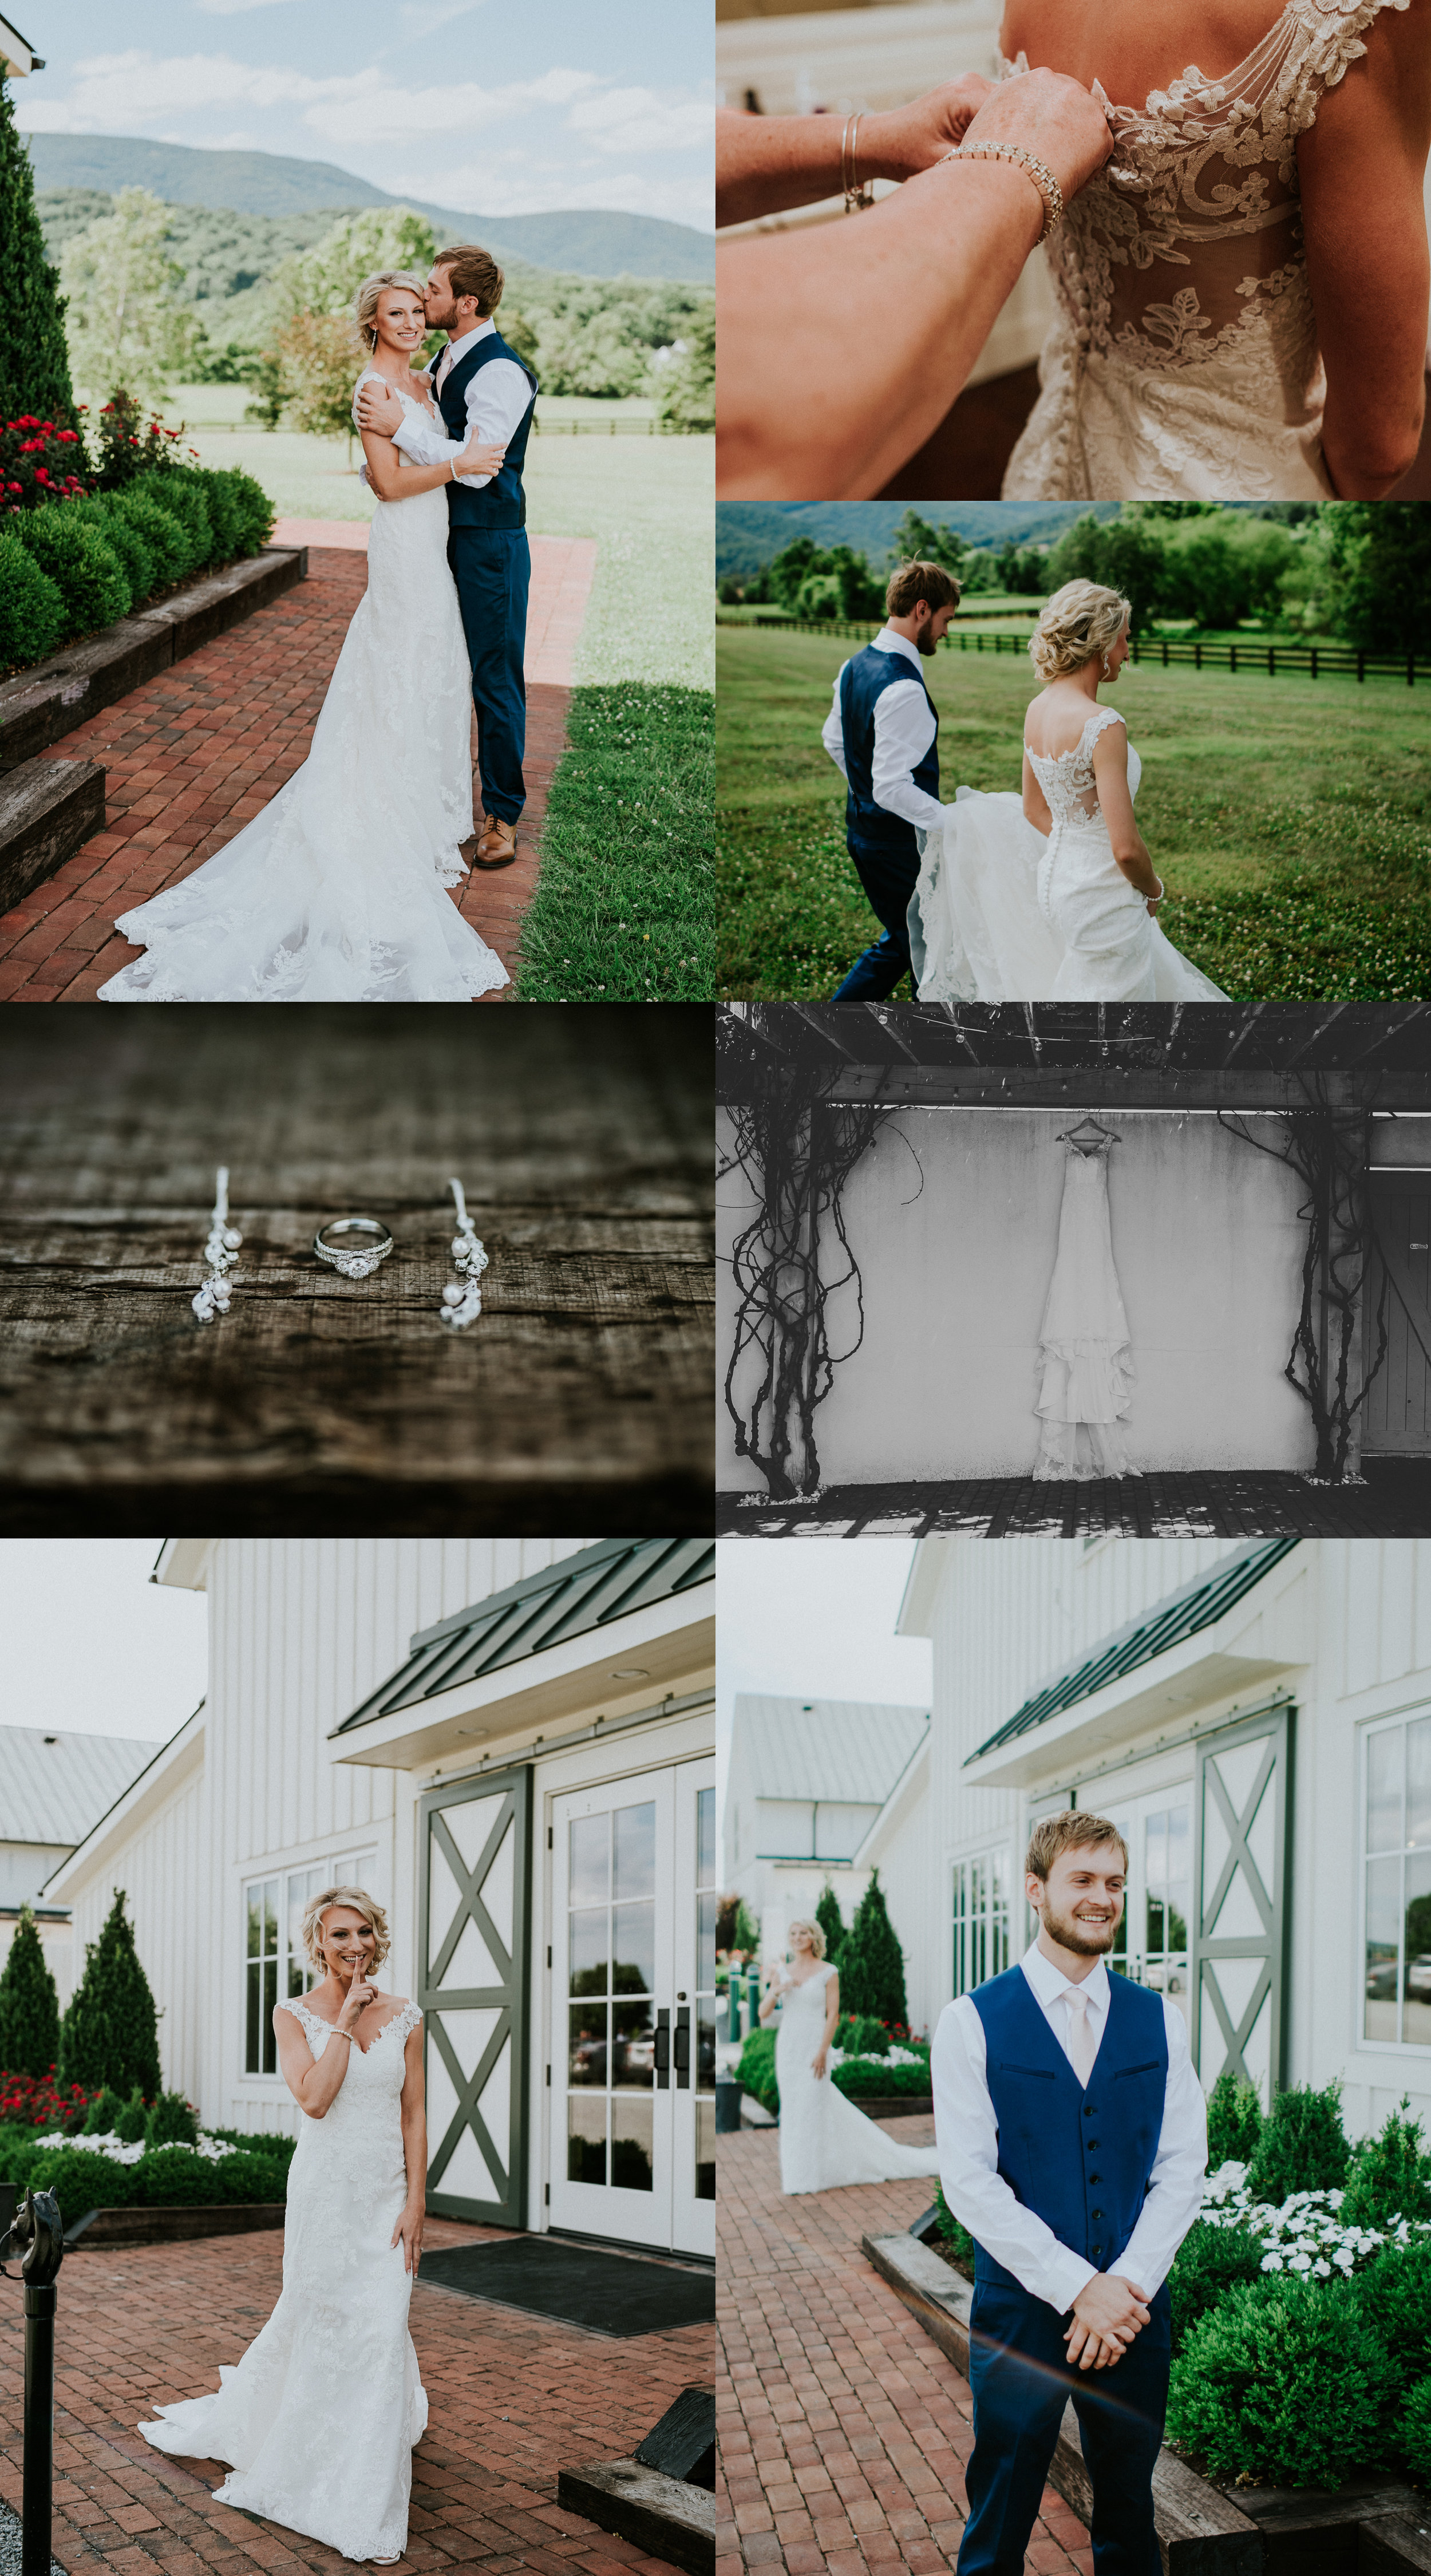 King Family Vineyard wedding